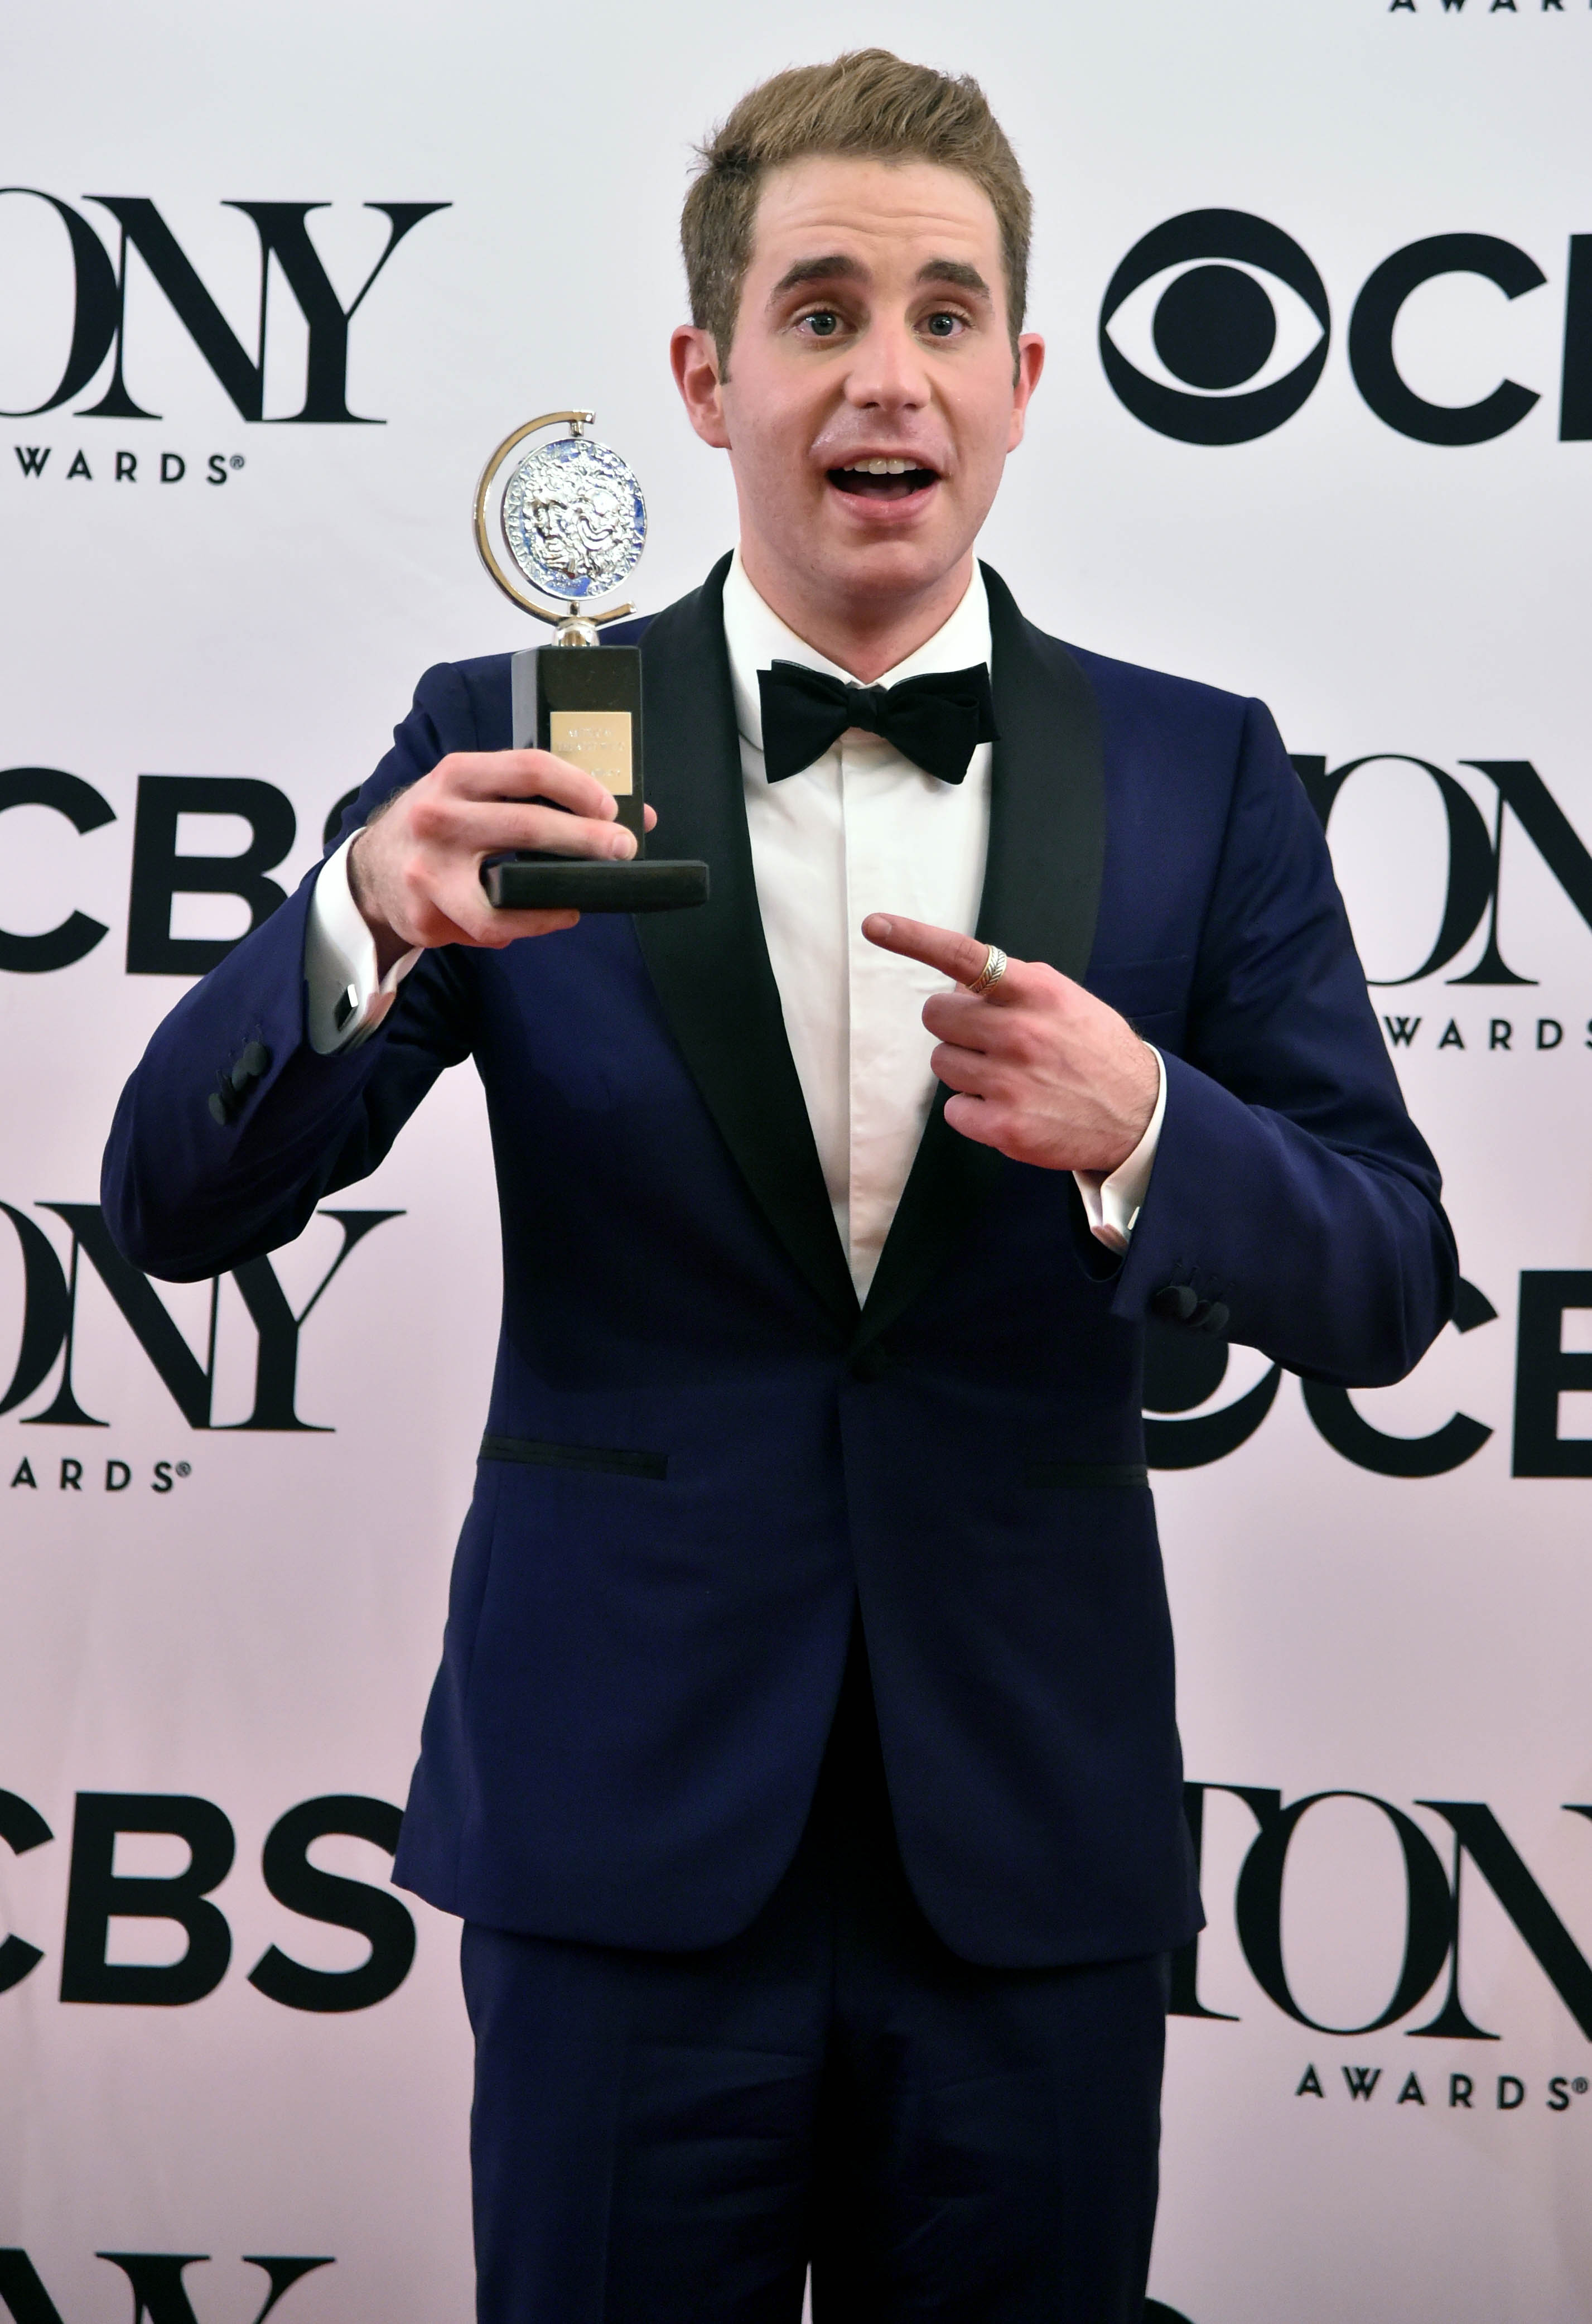 71st Annual Tony Awards, Press Room, New York, USA - 11 Jun 2017